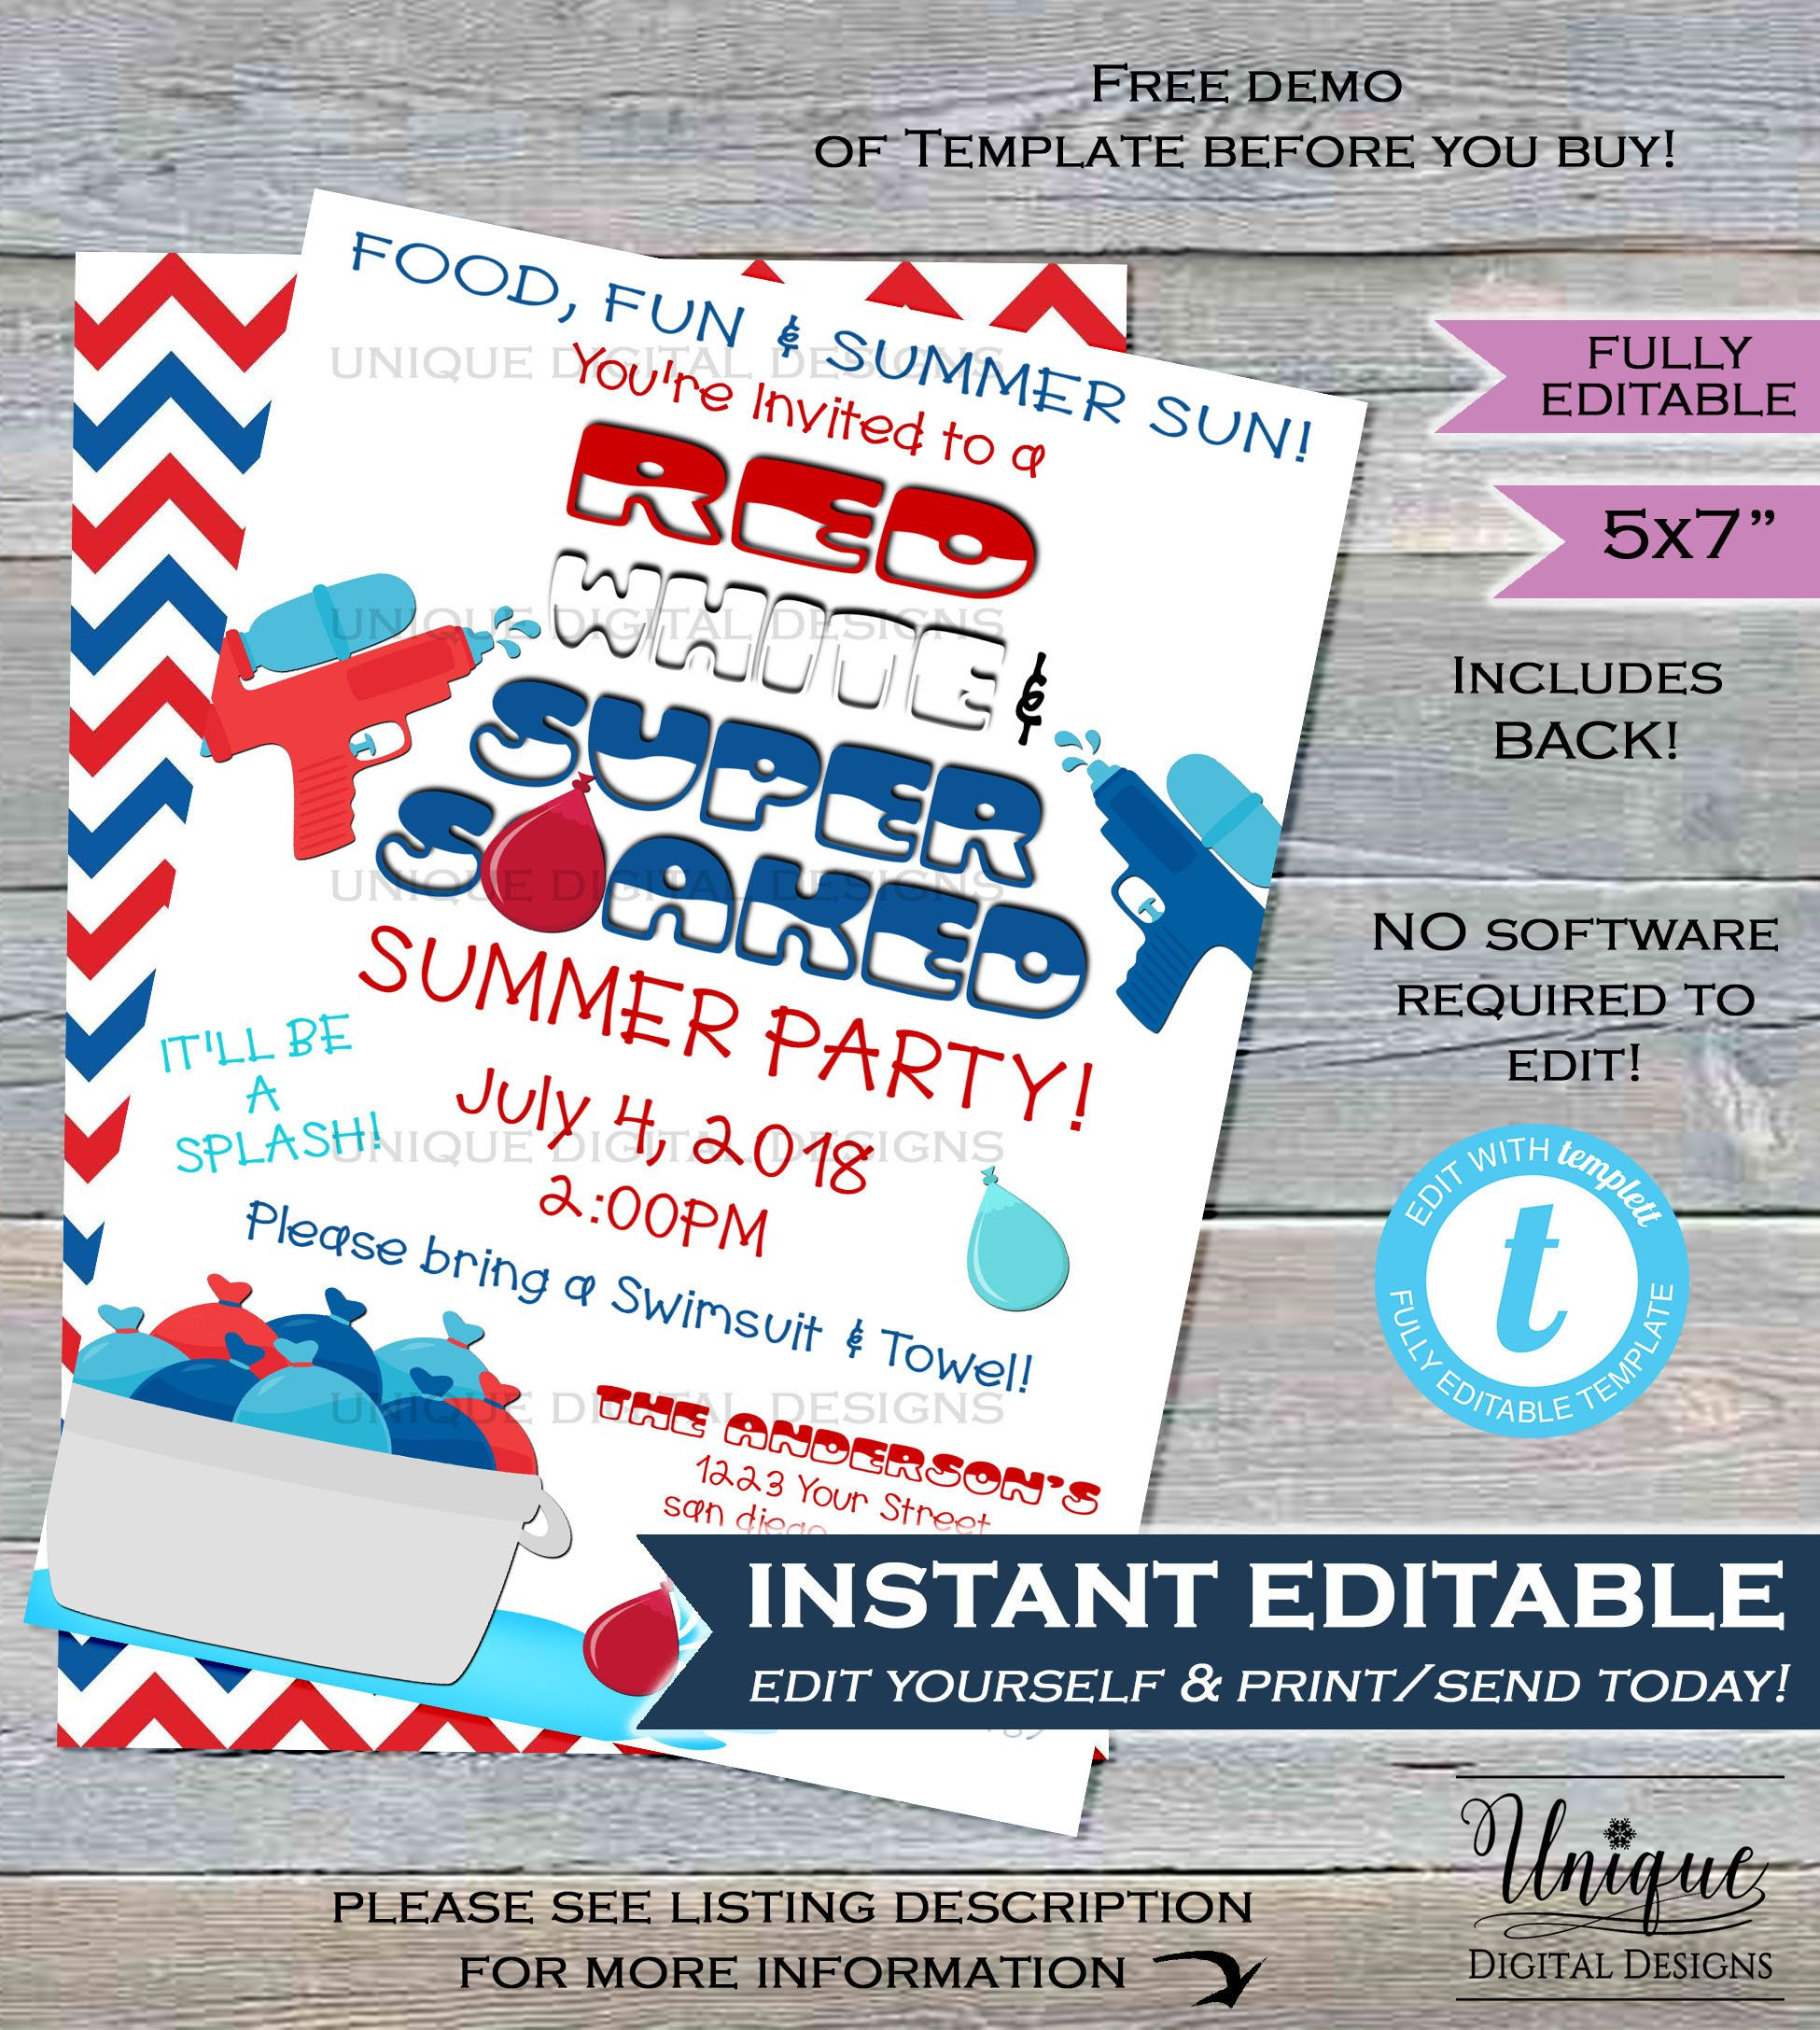 Water Party Invitation Super Soaked Red White Blue 4th Of July Splish Splash Summer Pool Par Water Party Invitations Pool Party Invitations Pool Birthday Party